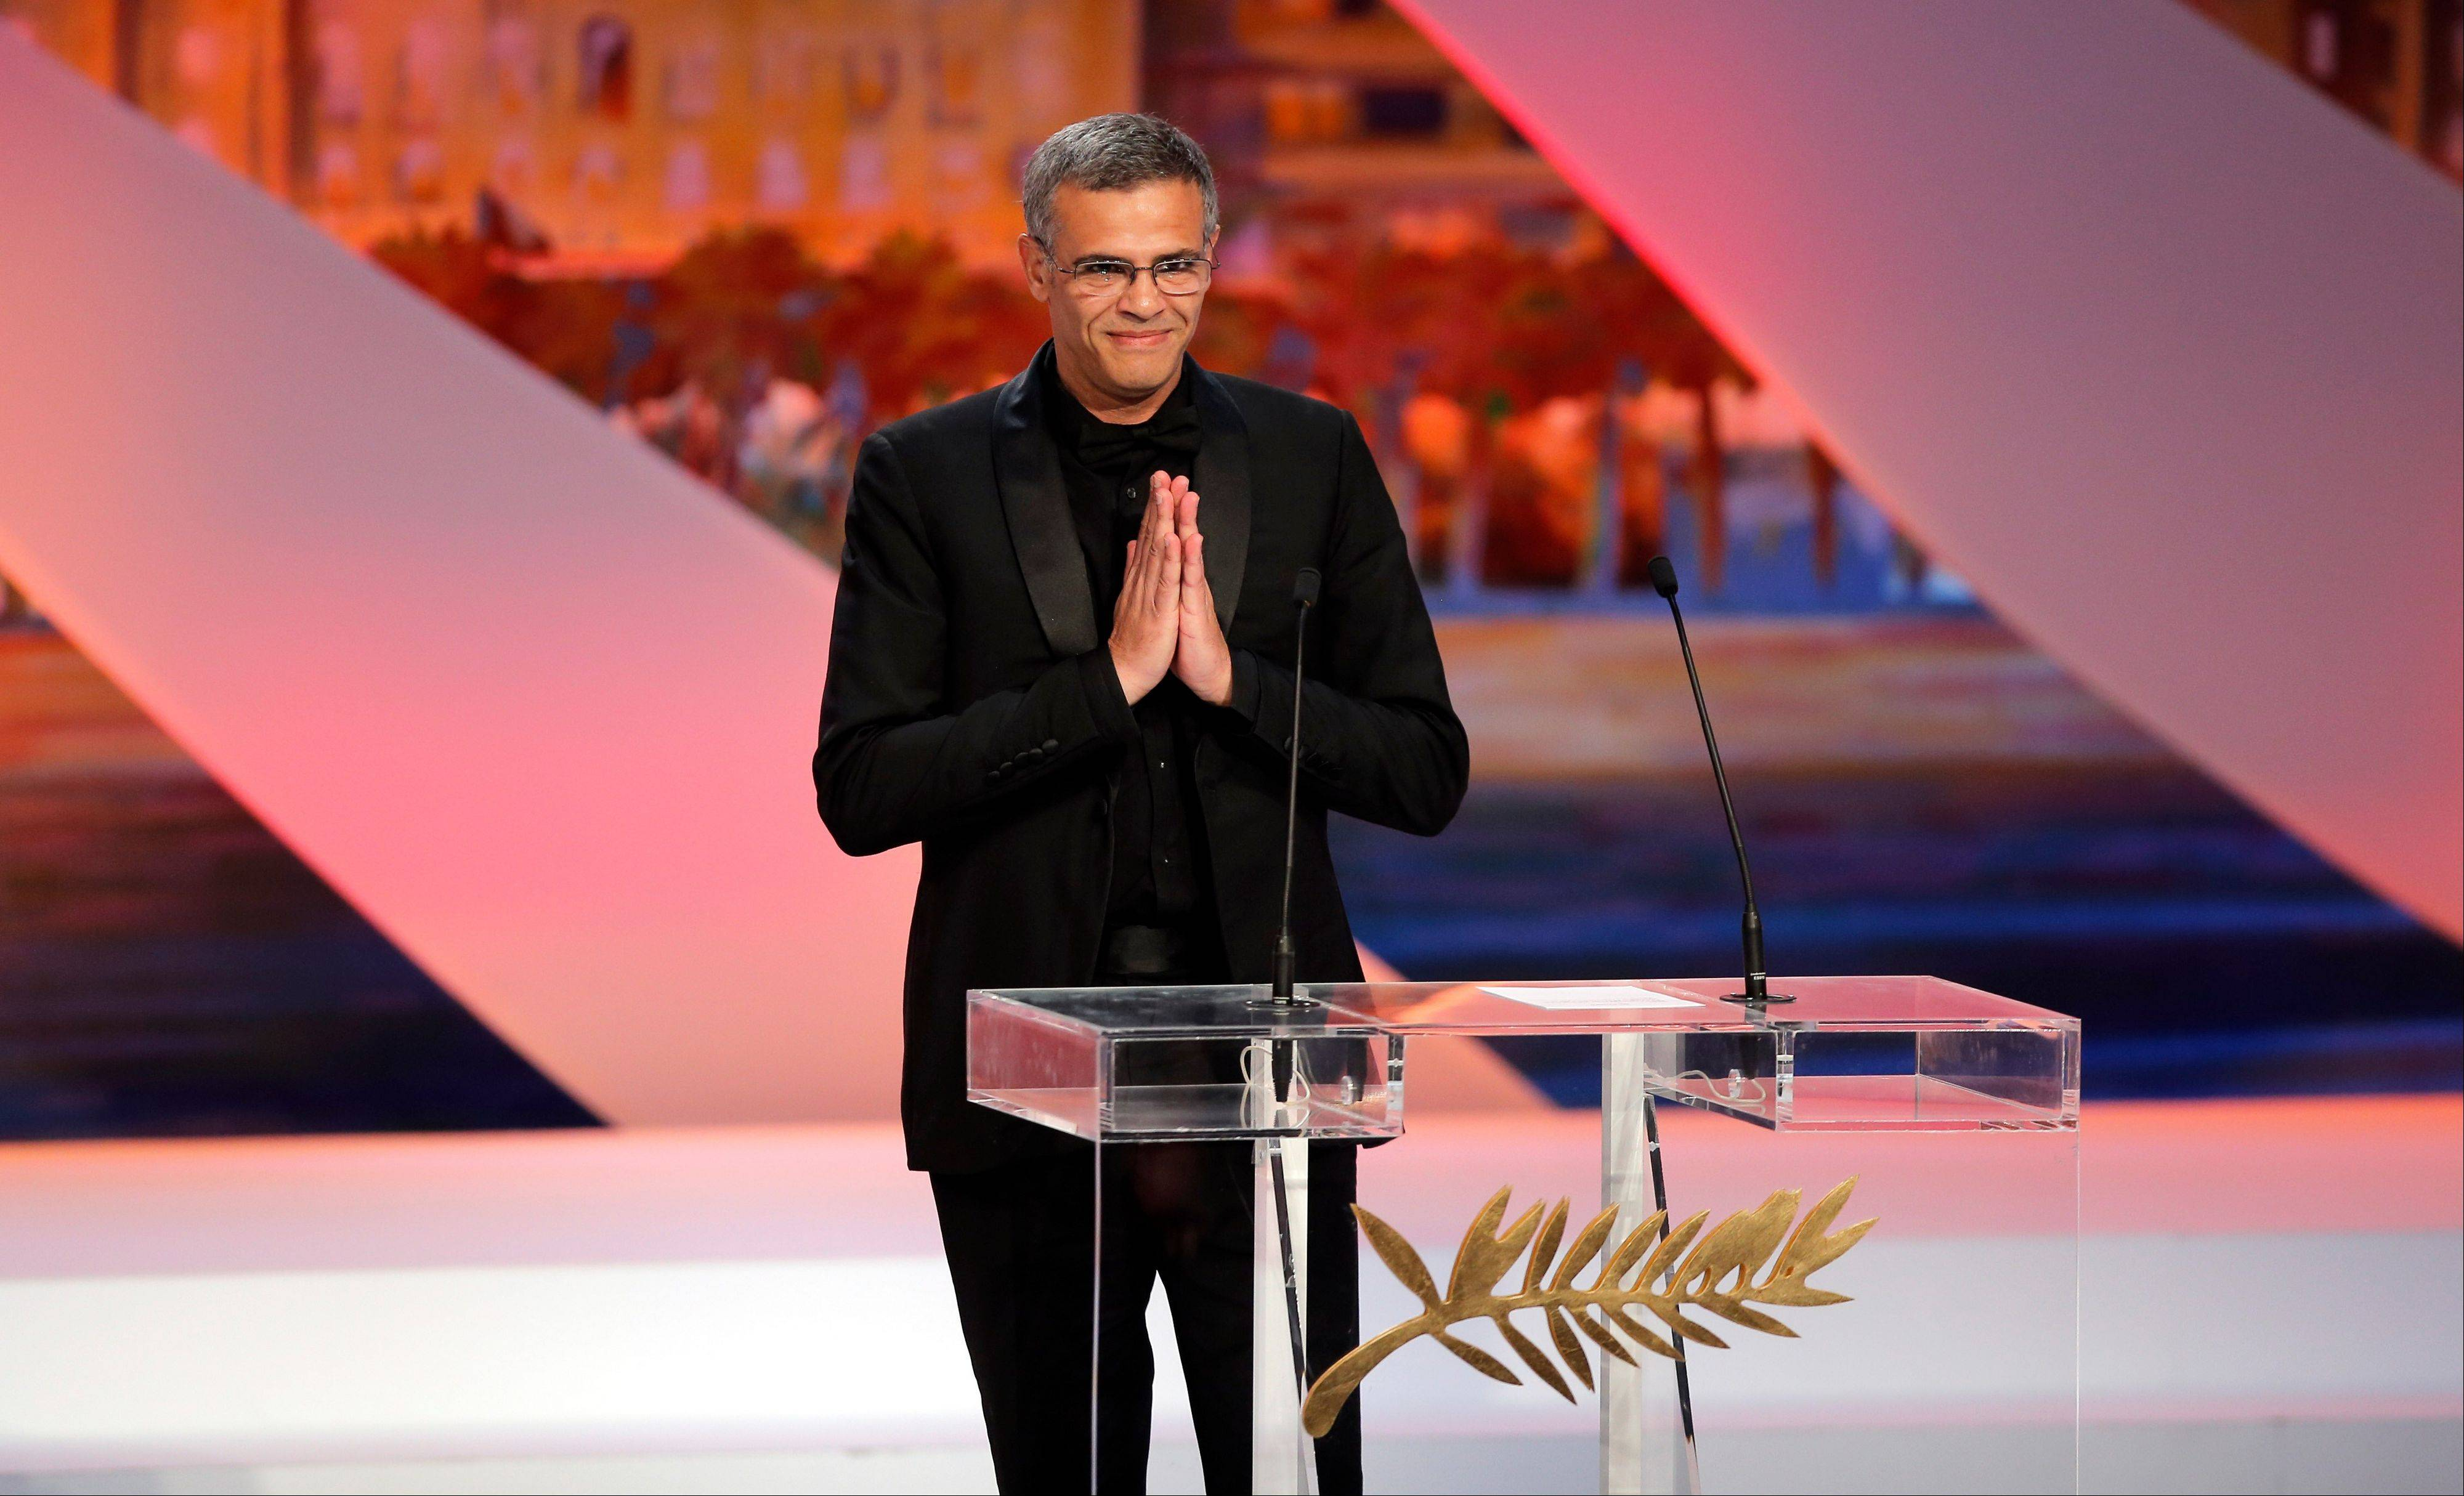 Director Abdellatif Kechiche gestures after being presented the Palme d'Or award for his film La Vie D'Adele during an awards ceremony at the 66th international film festival, in Cannes, southern France, Sunday, May 26, 2013.